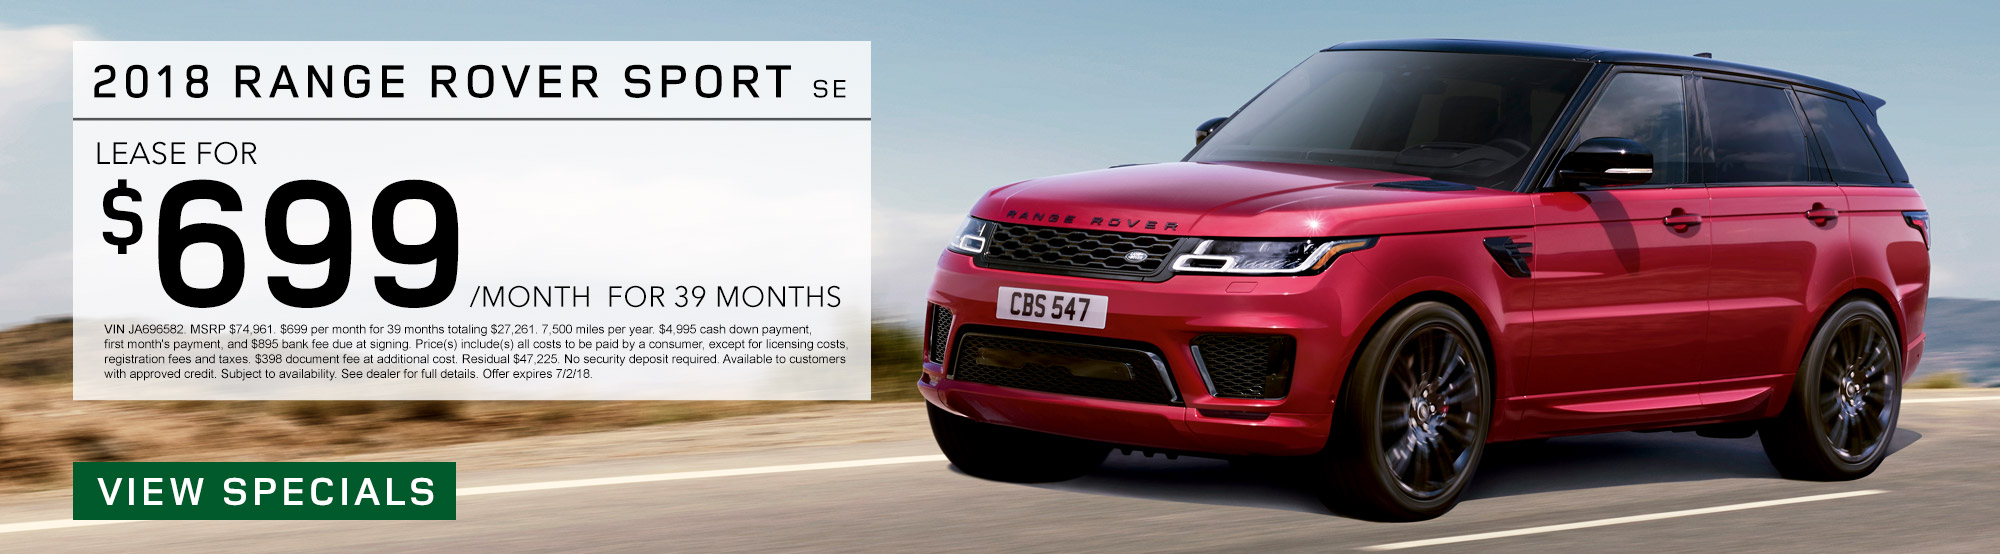 dealerships pages yeovil rover and build herofoliolr jlr buildfolio architecture land project management landrover